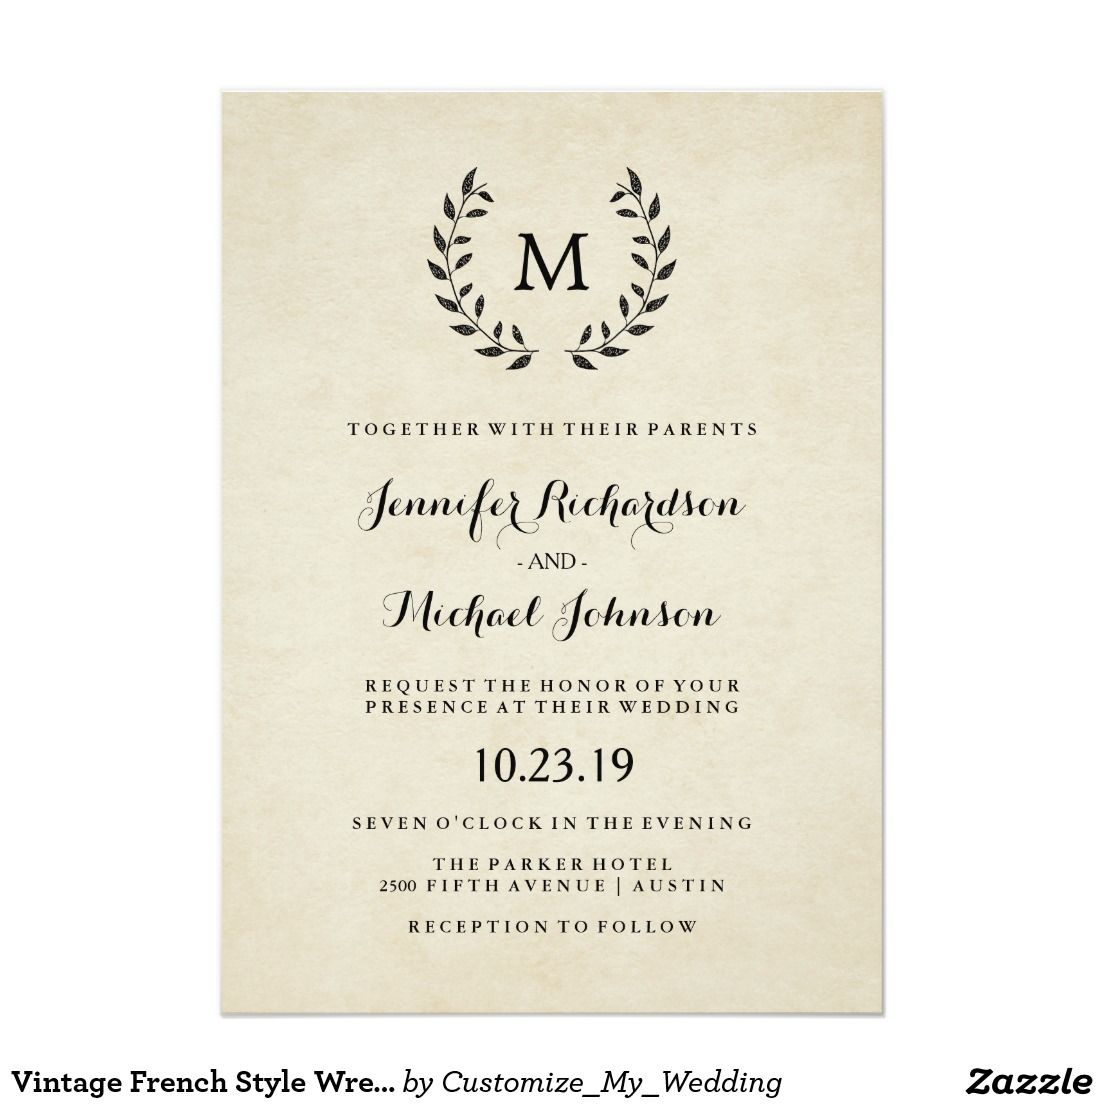 Vintage French Style Wreath And Monogram Wedding Invitation Stuff